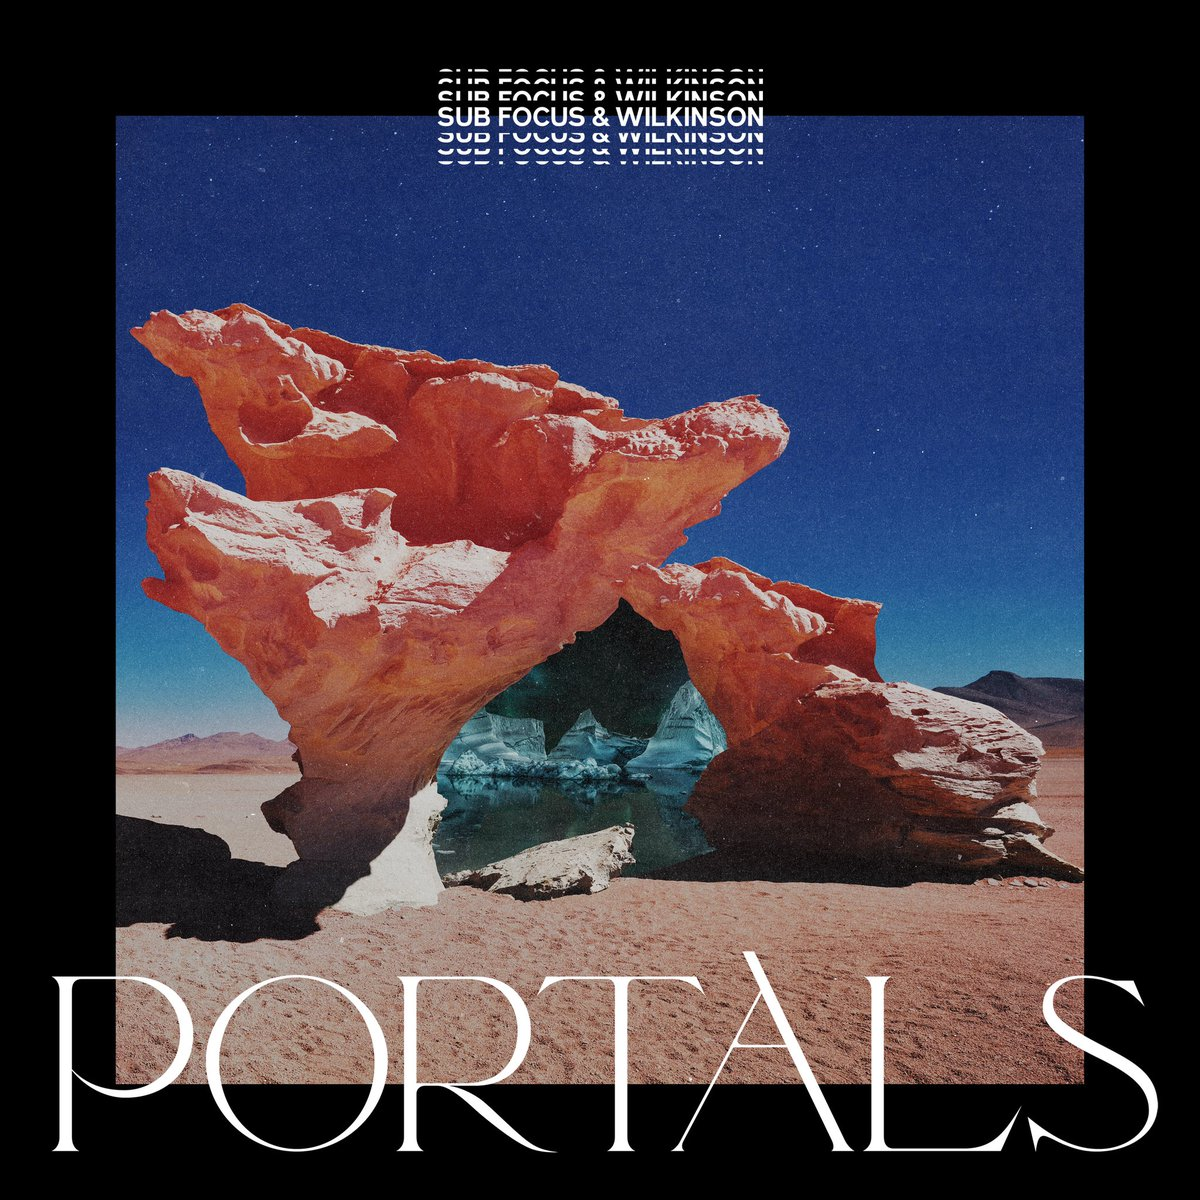 Here's the artwork and tracklist for Portals! Hope you guys love this as much as I do  We will be dropping brand new music ahead of release and a livestream in a stunning outdoor location to celebrate the launch!  Pre-order and exclusive stream access: https://t.co/SqGOfK2omn https://t.co/qwtl1DDv1T